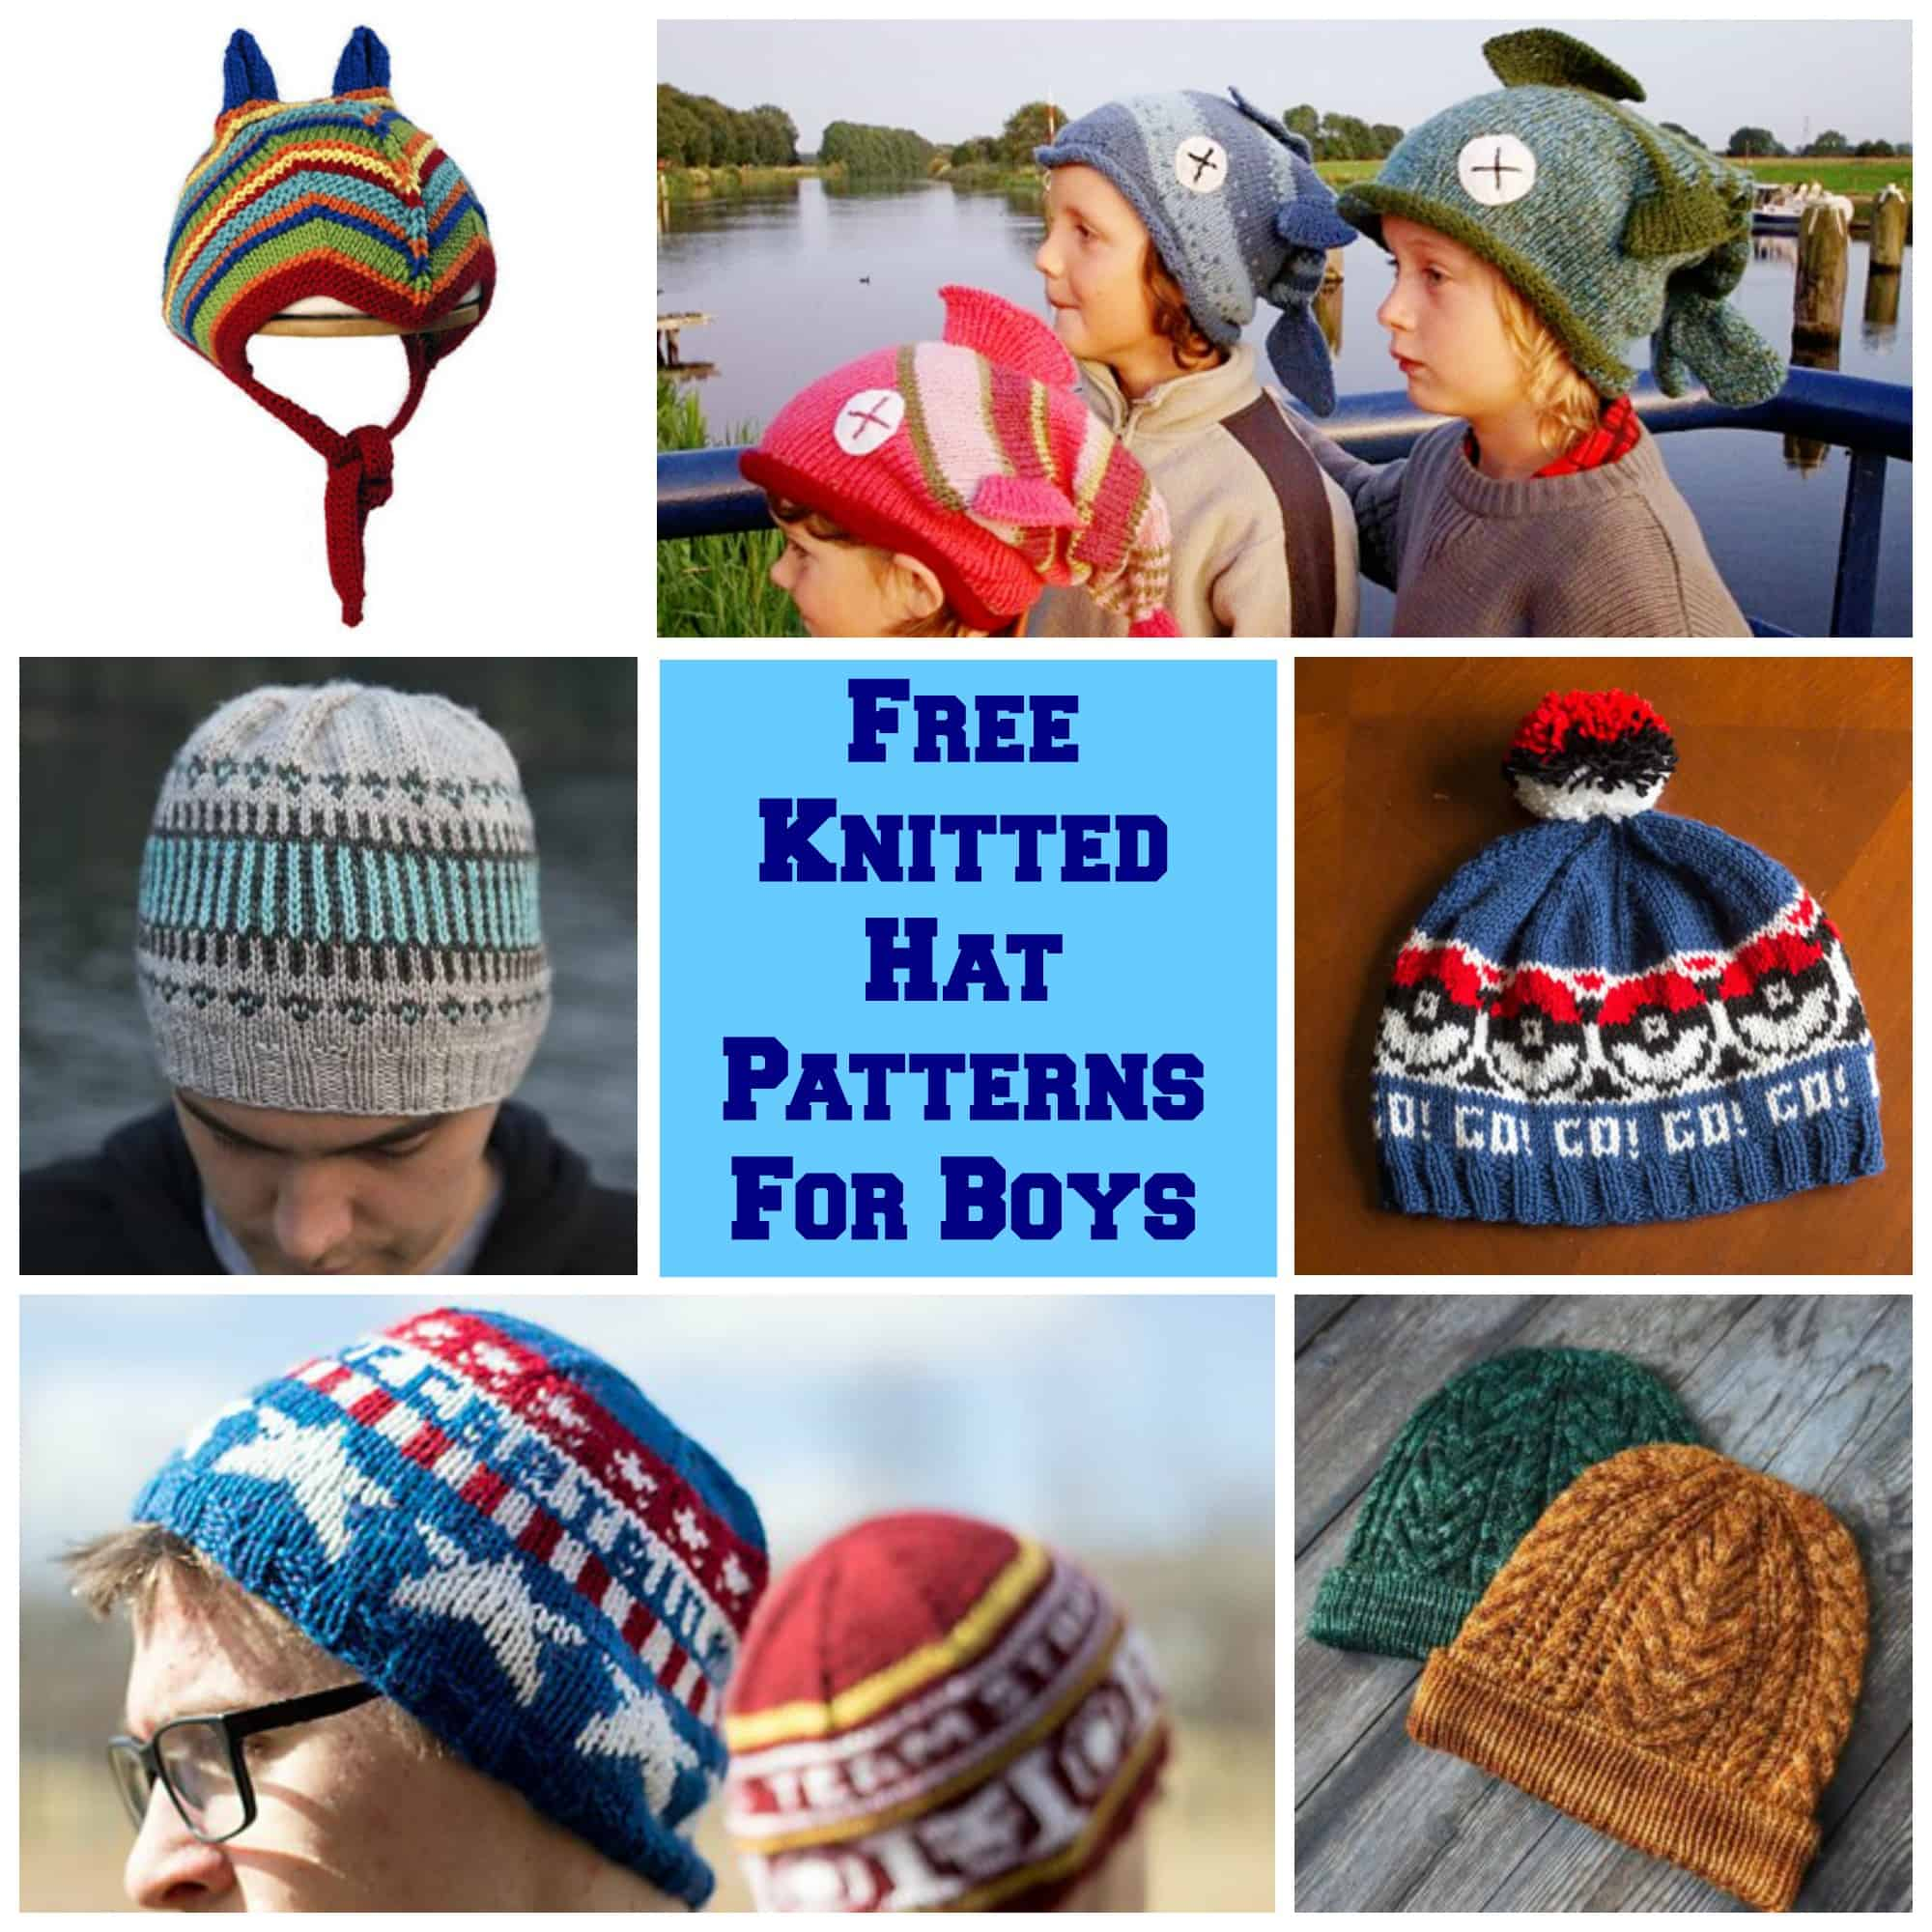 The HUGE List Of Free Knitted Hat Patterns For Boys via LittleMissKate.ca 9e9848819c7